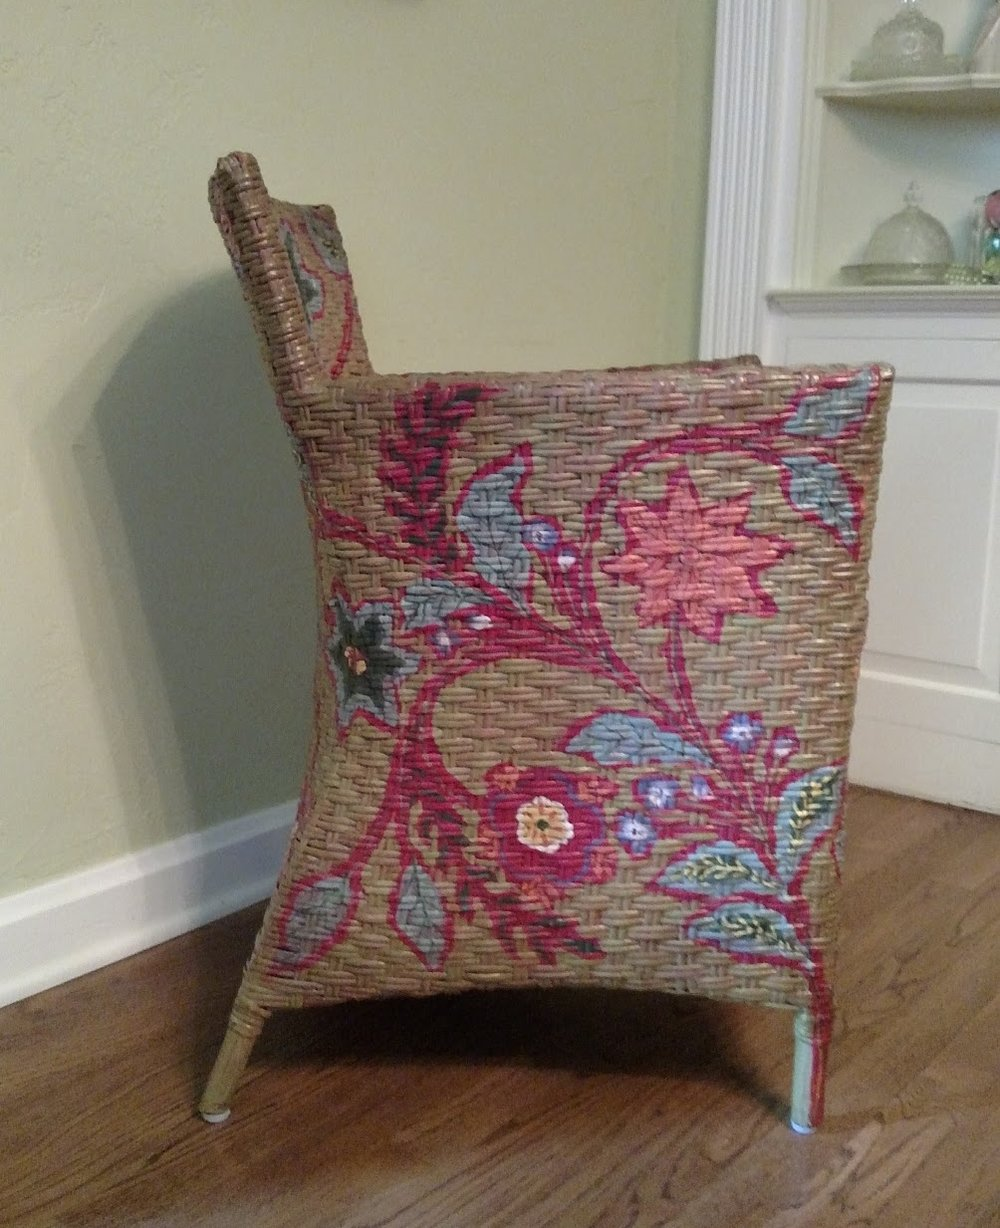 WICKER CHAIR SIDE VIEW.jpg